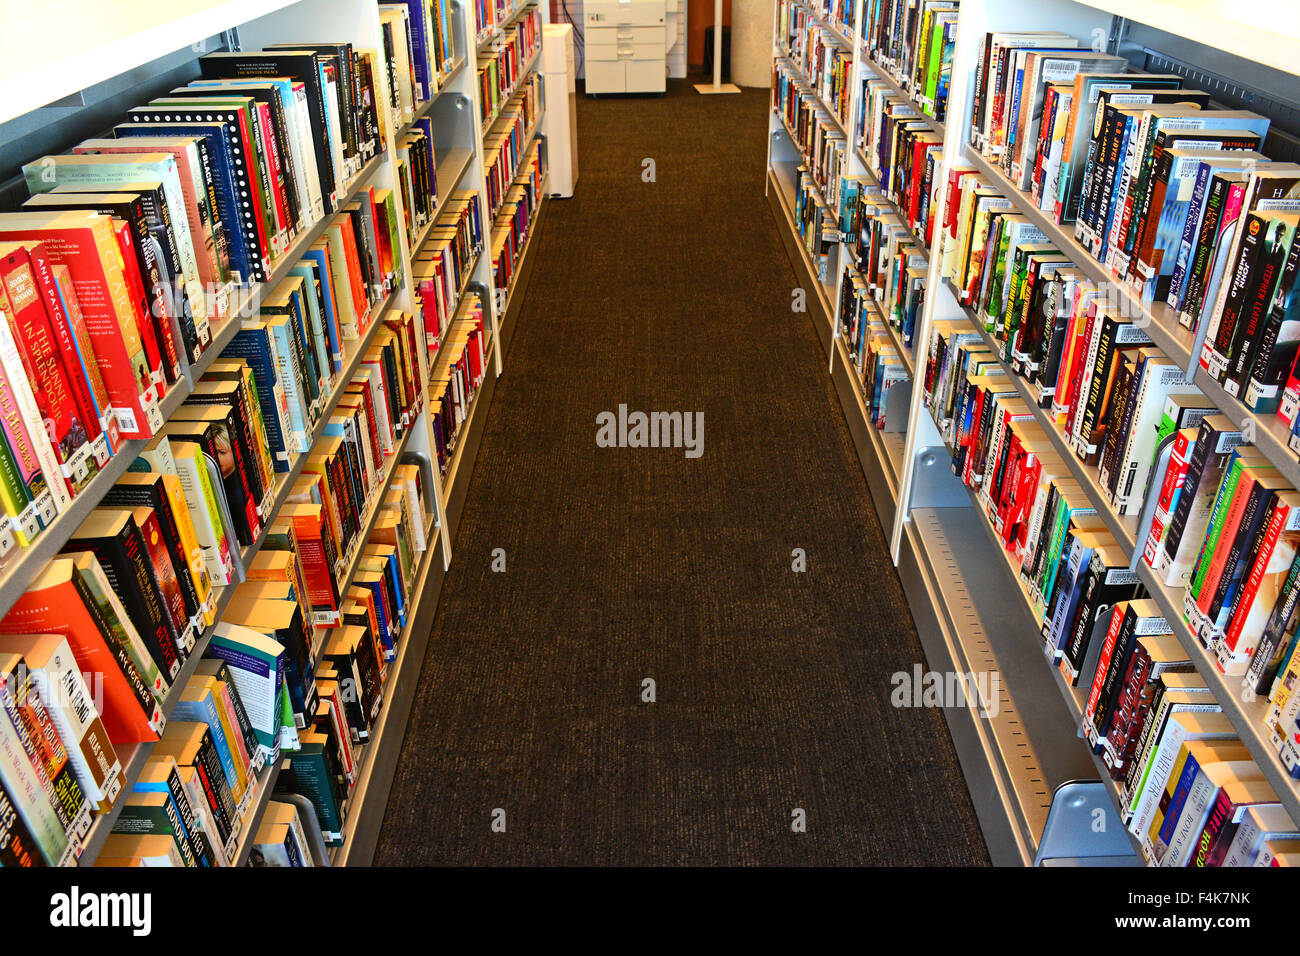 Book shelves in a library - Stock Image